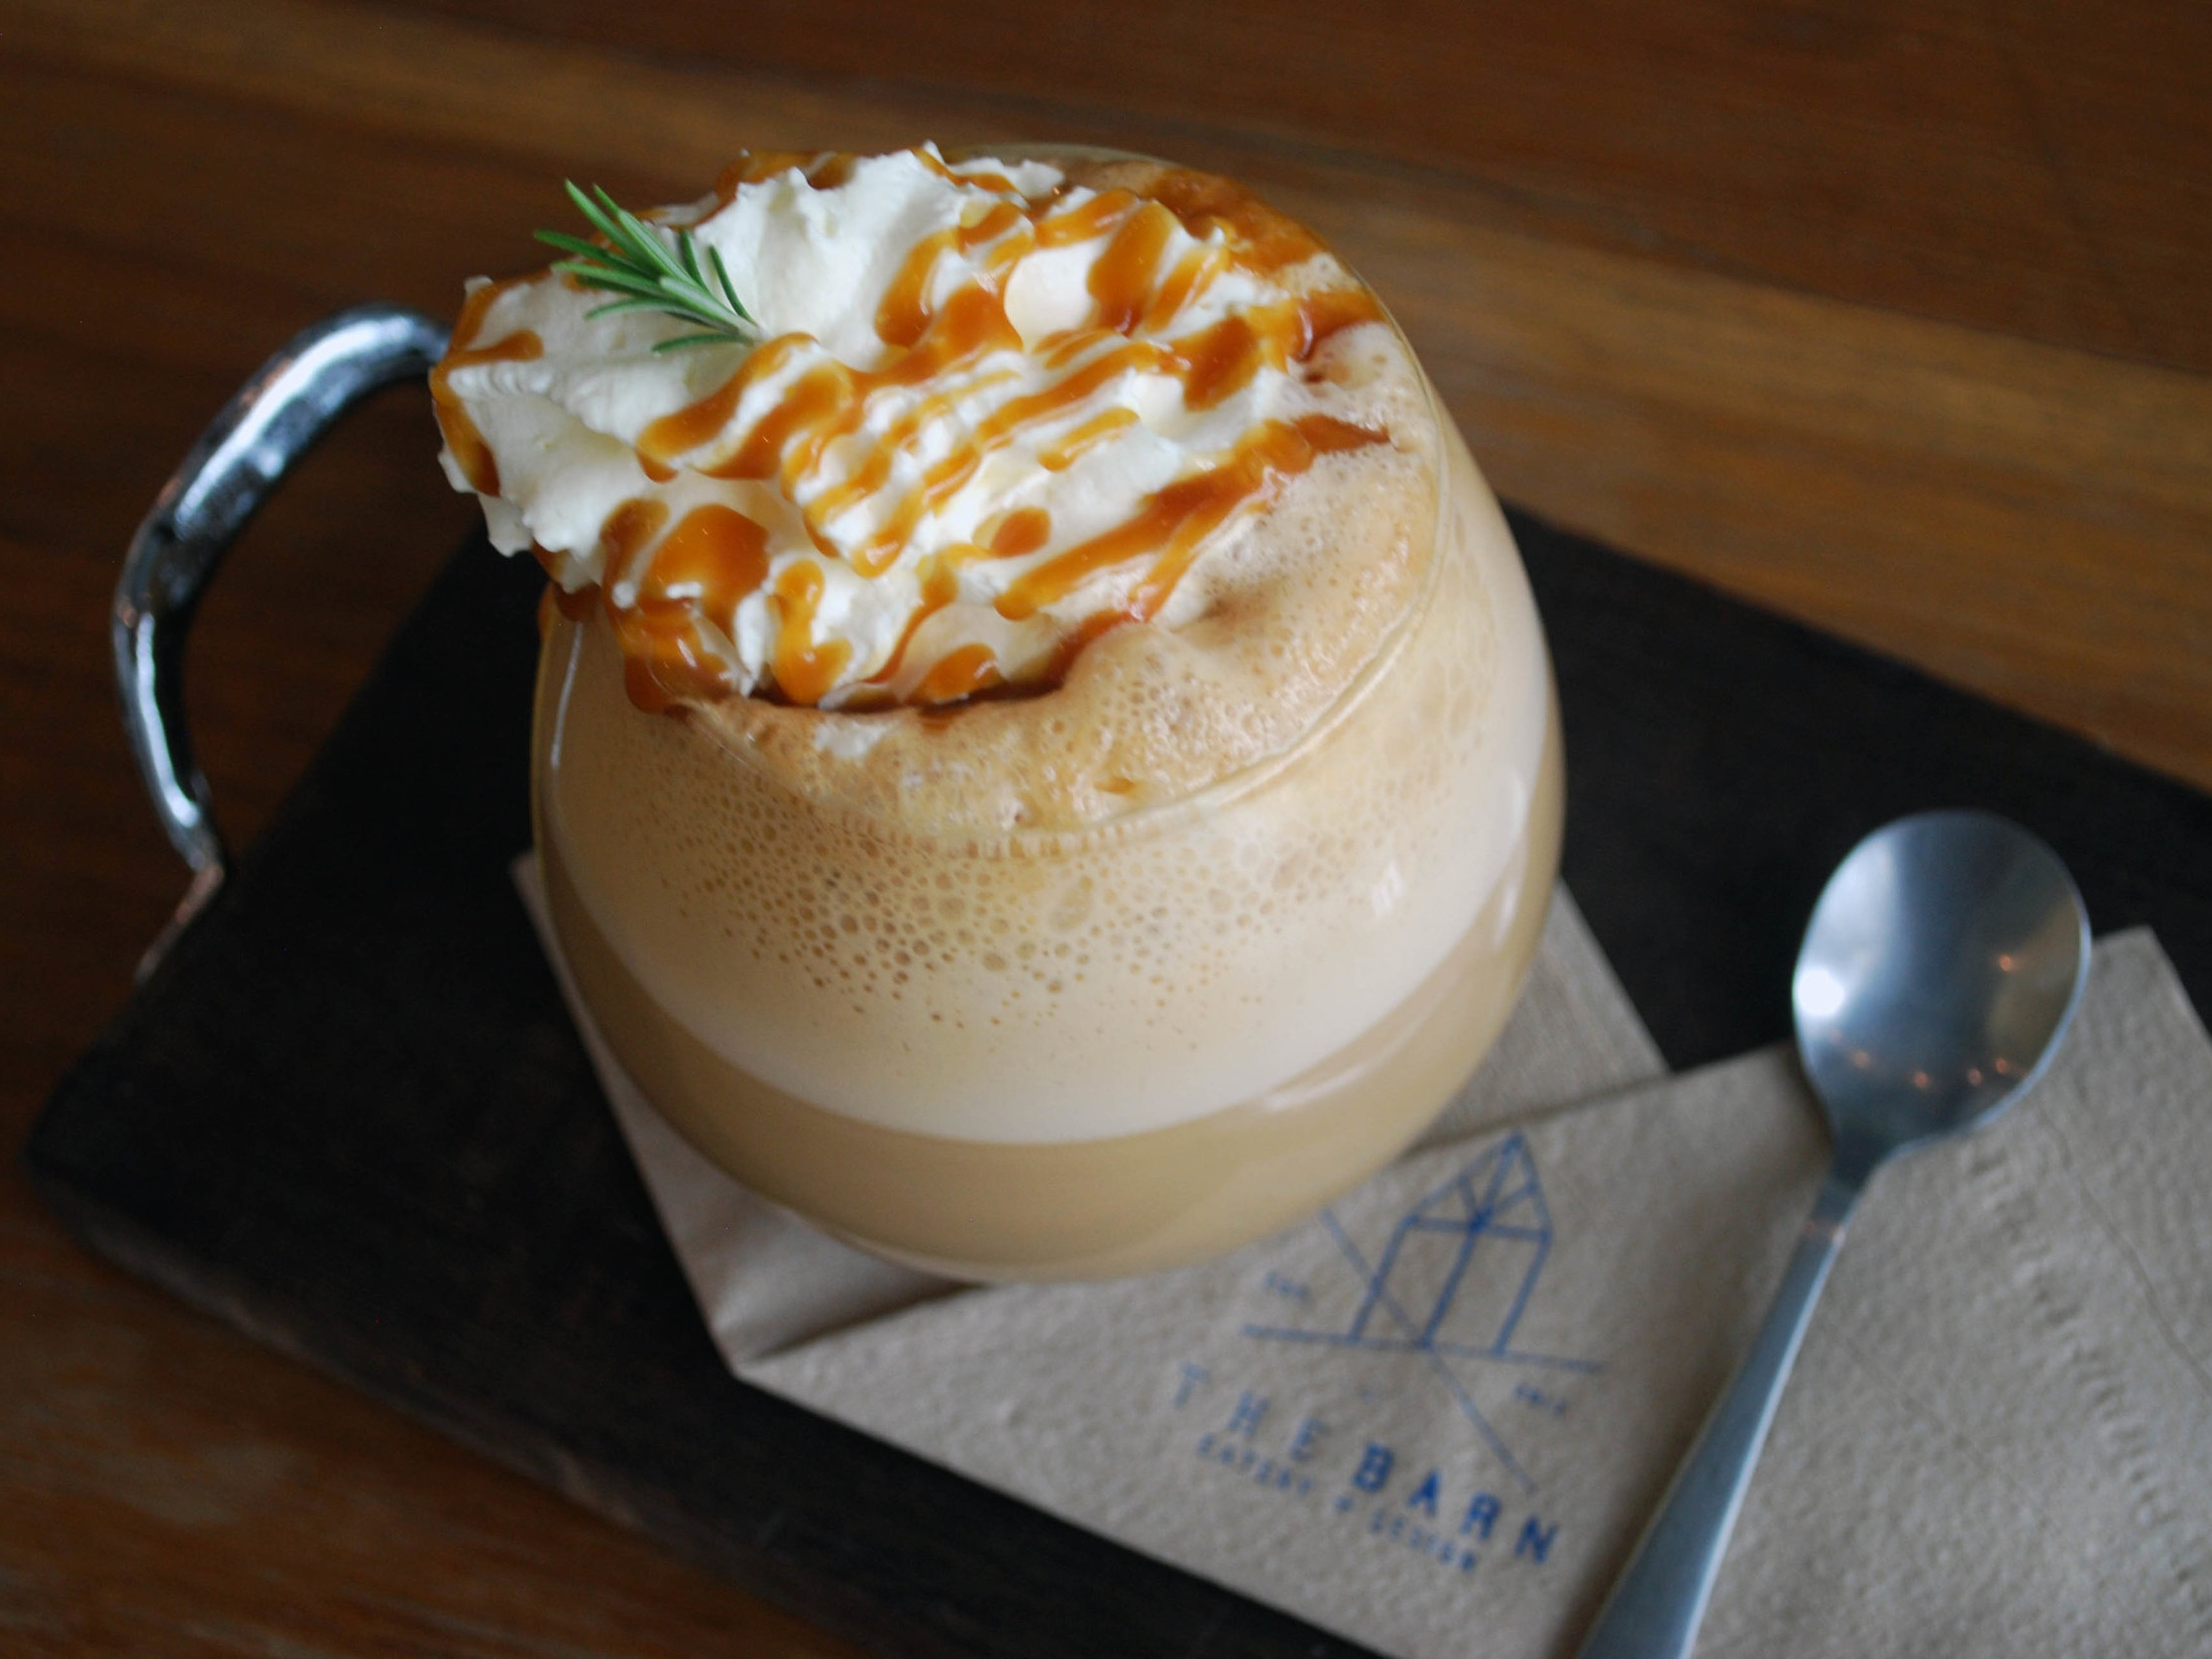 A delicious latte at Chiang Mai's The Barn, Eatery Cafe